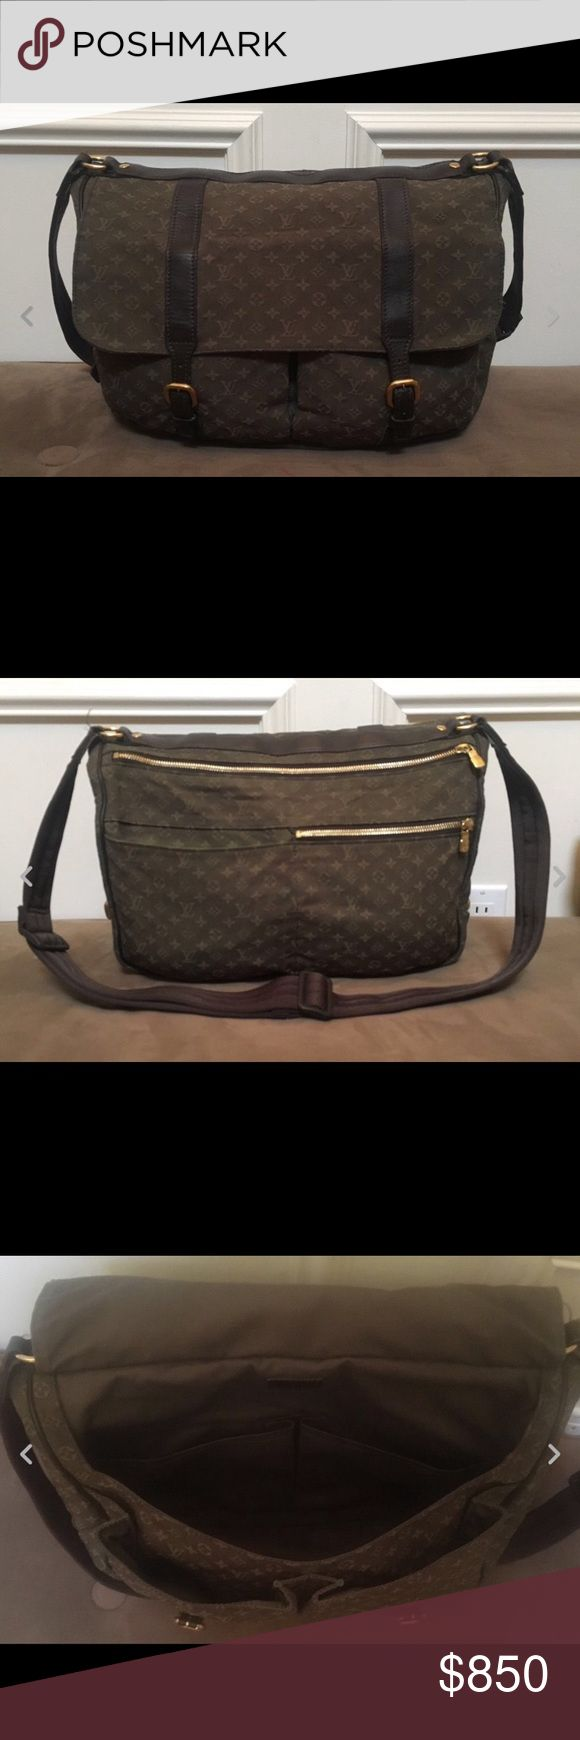 Louis Vuitton canvas diaper bag Louis Vuitton brown canvas monogram diaper bag with removable changing pad. Like new with minimal to no wear! Louis Vuitton Bags Baby Bags